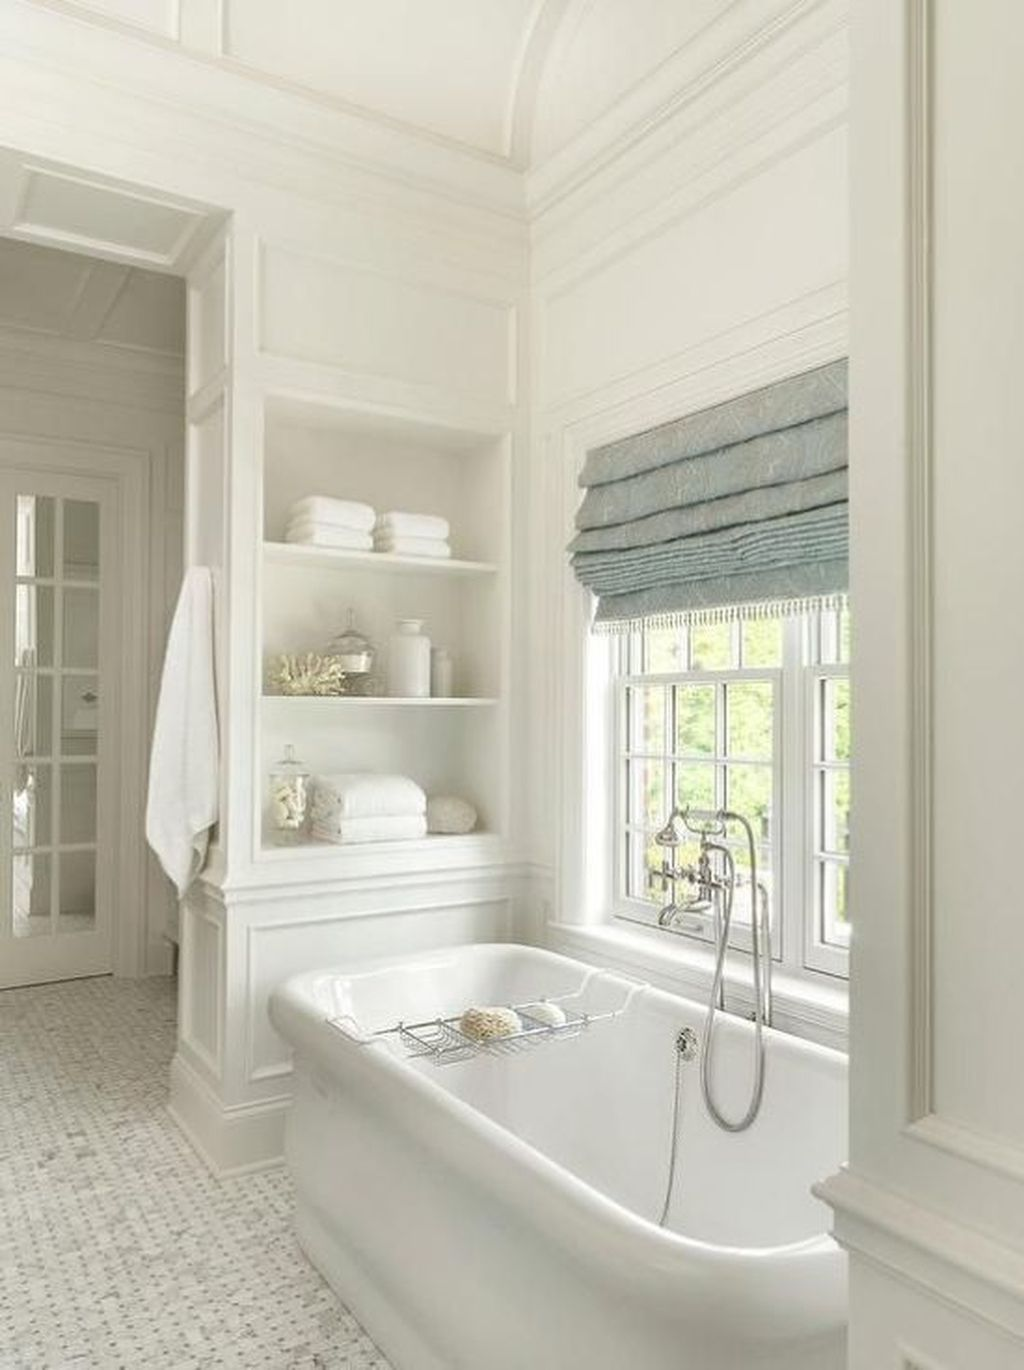 20 unique traditional bathroom design ideas for room in on home inspirations this year the perfect dream bathrooms diy bathroom ideas id=44559